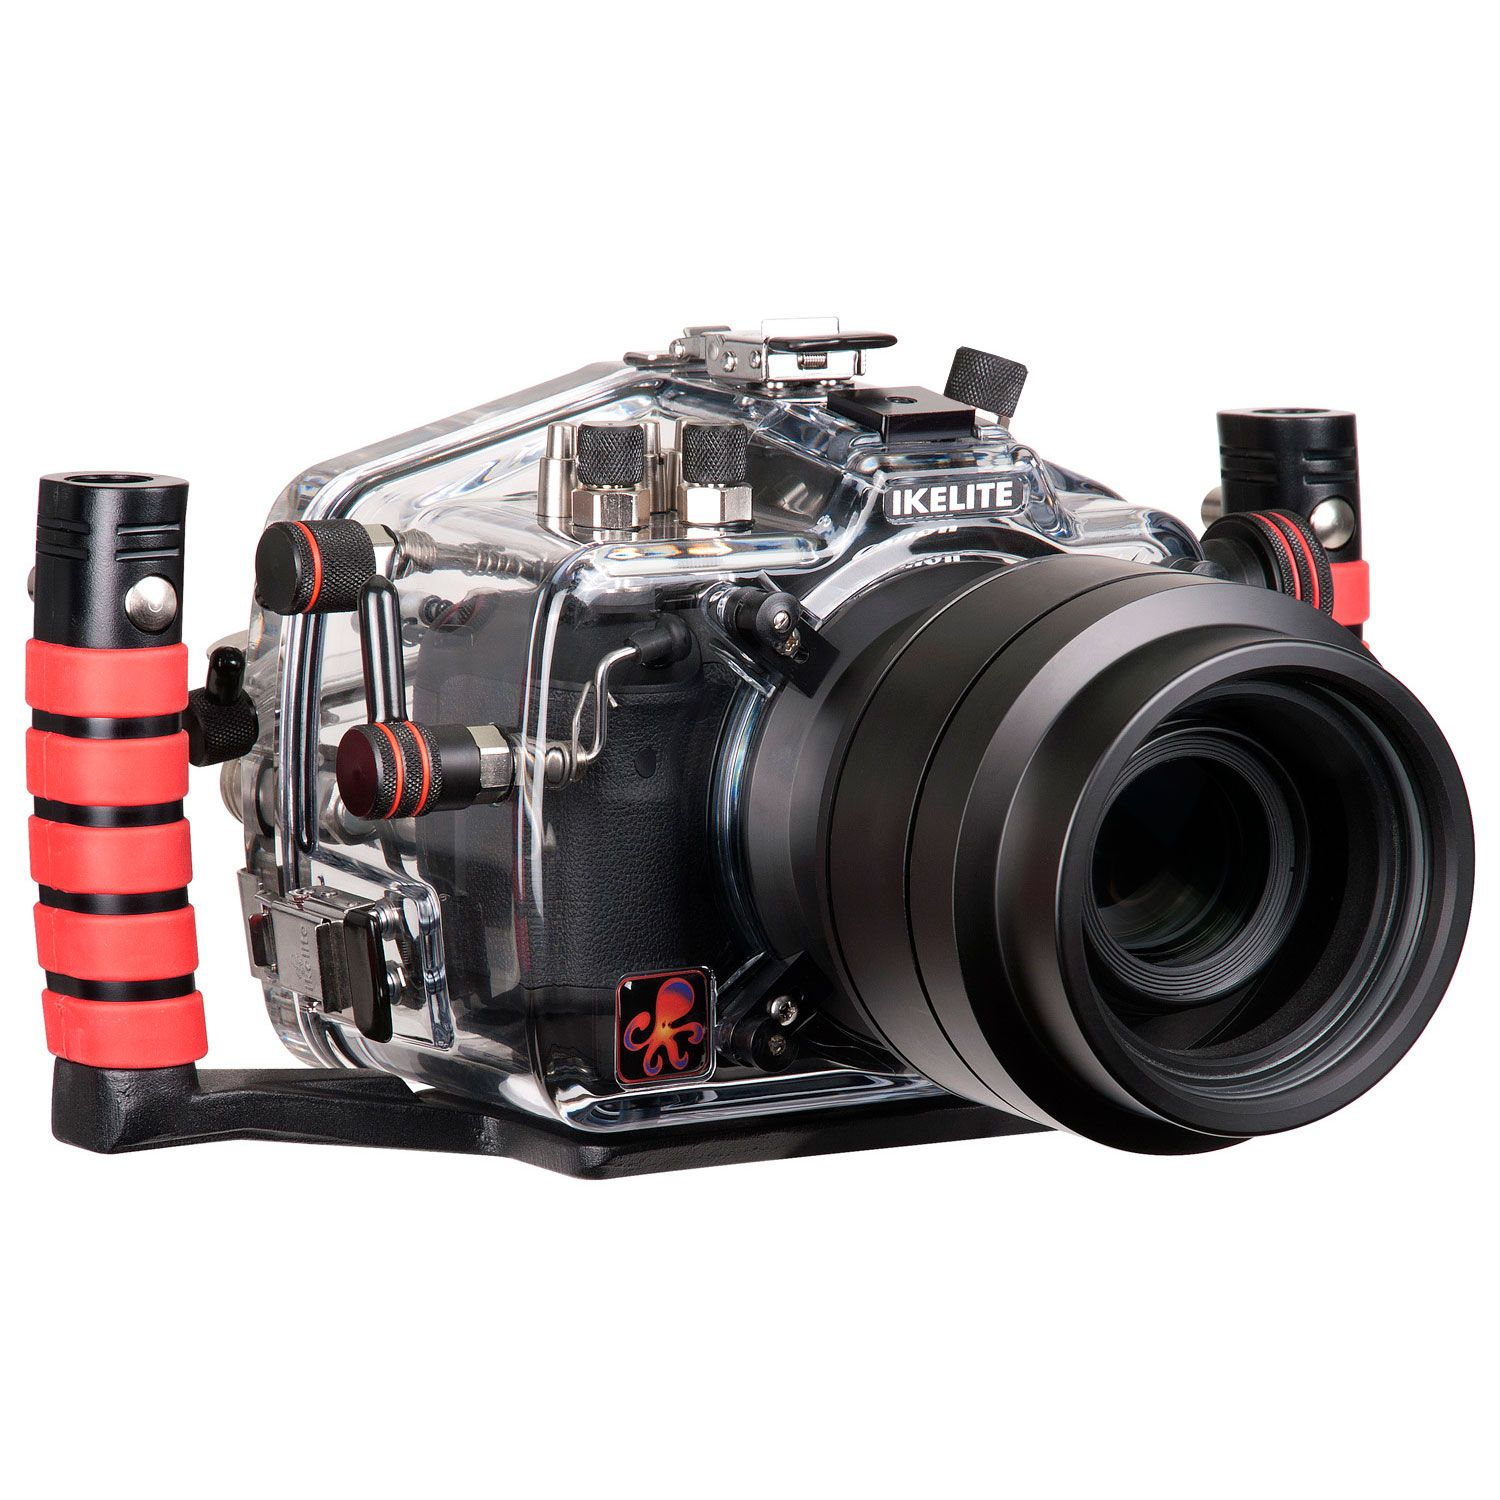 200dl Underwater Housing For Canon Eos 5d Mark Iii 5d Mark Iv 5ds 5ds R Dslr Cameras Underwater Camera Housing Underwater Camera Waterproof Camera